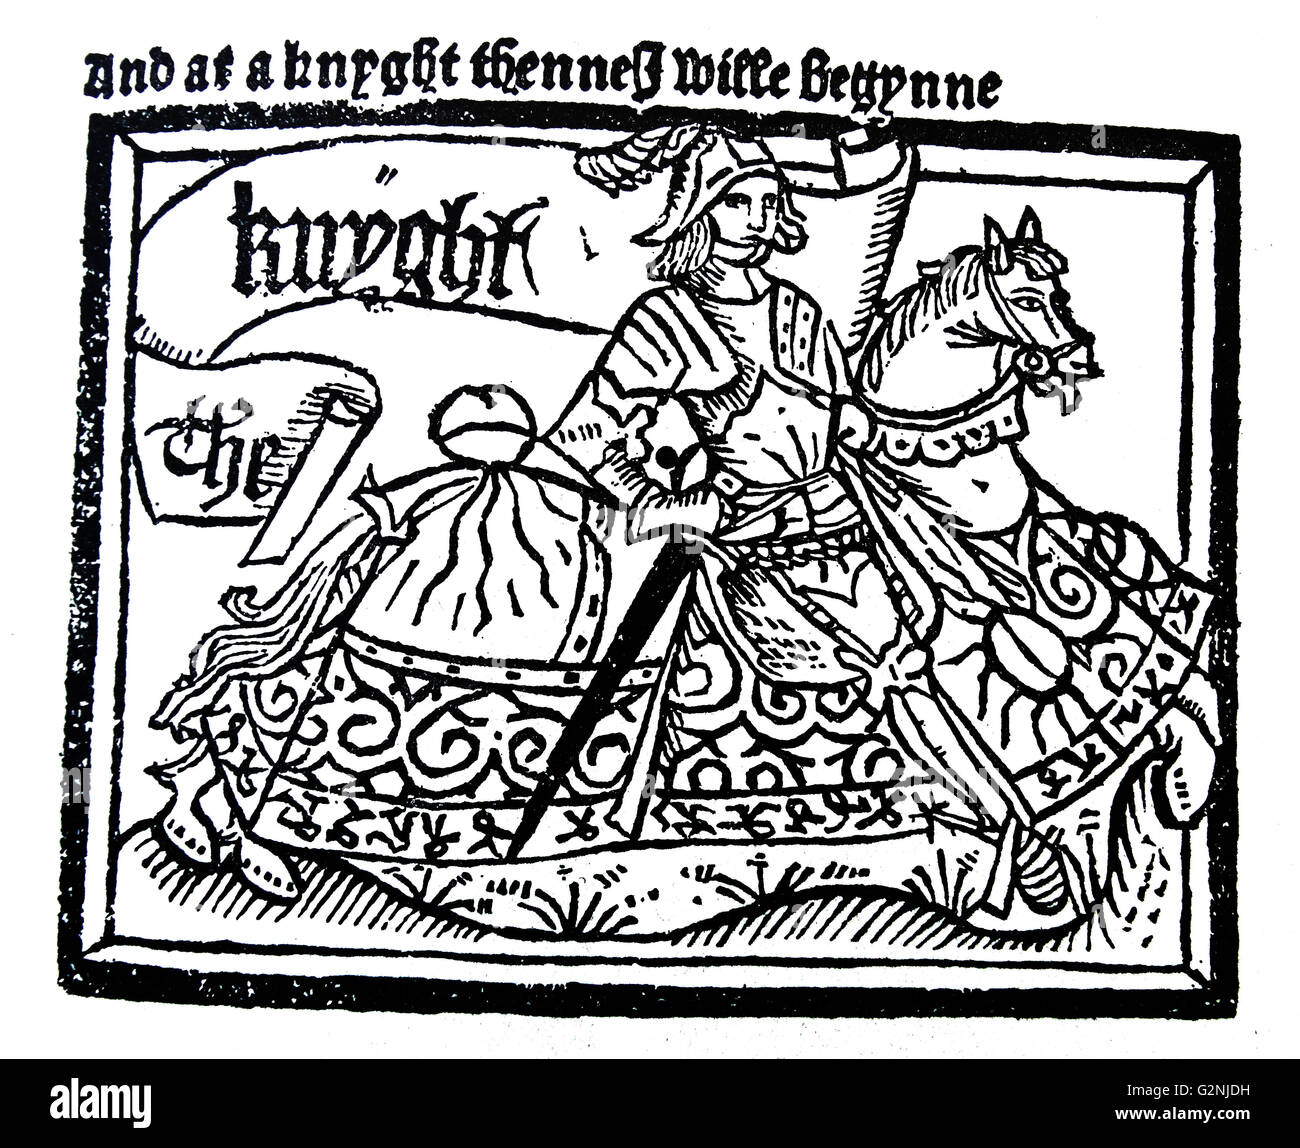 The Chaucer's Knight, from the Canterbury Tales - Stock Image